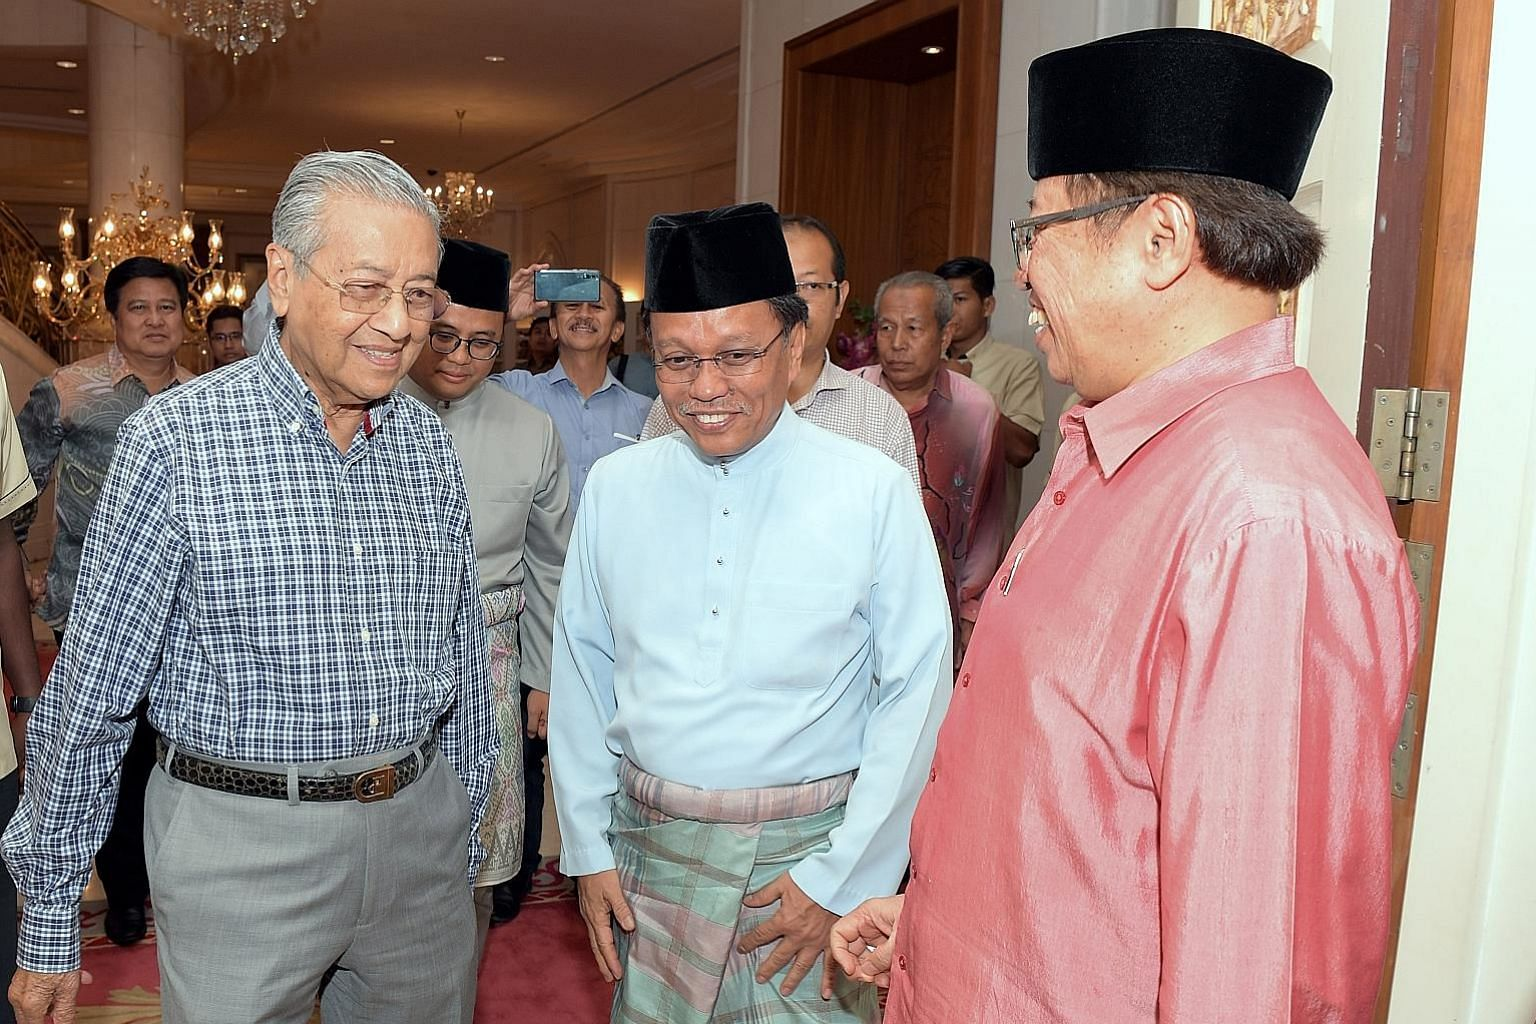 A June 2018 file photo of then Malaysian Prime Minister Mahathir Mohamad, Sabah Chief Minister Shafie Apdal (centre) and Sarawak Chief Minister Abang Johari Tun Openg (right) at an event in Putrajaya. Dr Mahathir said yesterday that Pakatan Harapan P